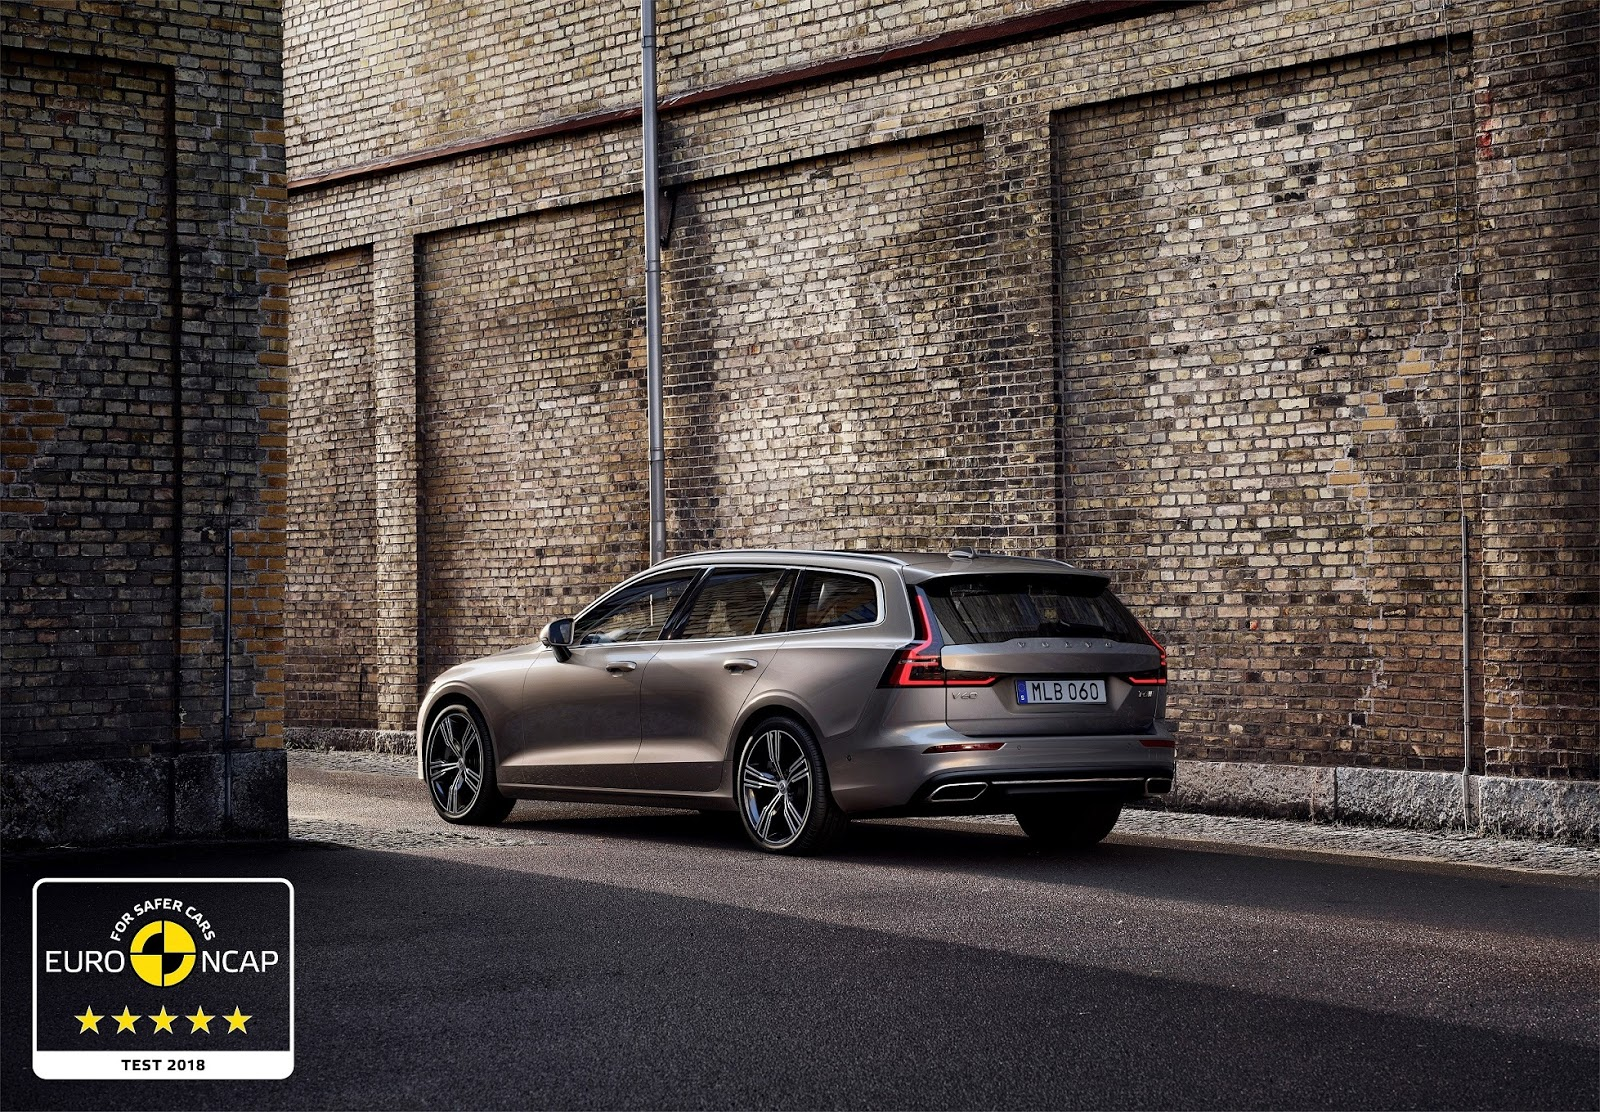 246535 Volvo S60 and V60 secure 5 star safety rating by Euro NCAP1 Συνεχίζουν το σερί 5 αστέρων τα Volvo S60 και V60